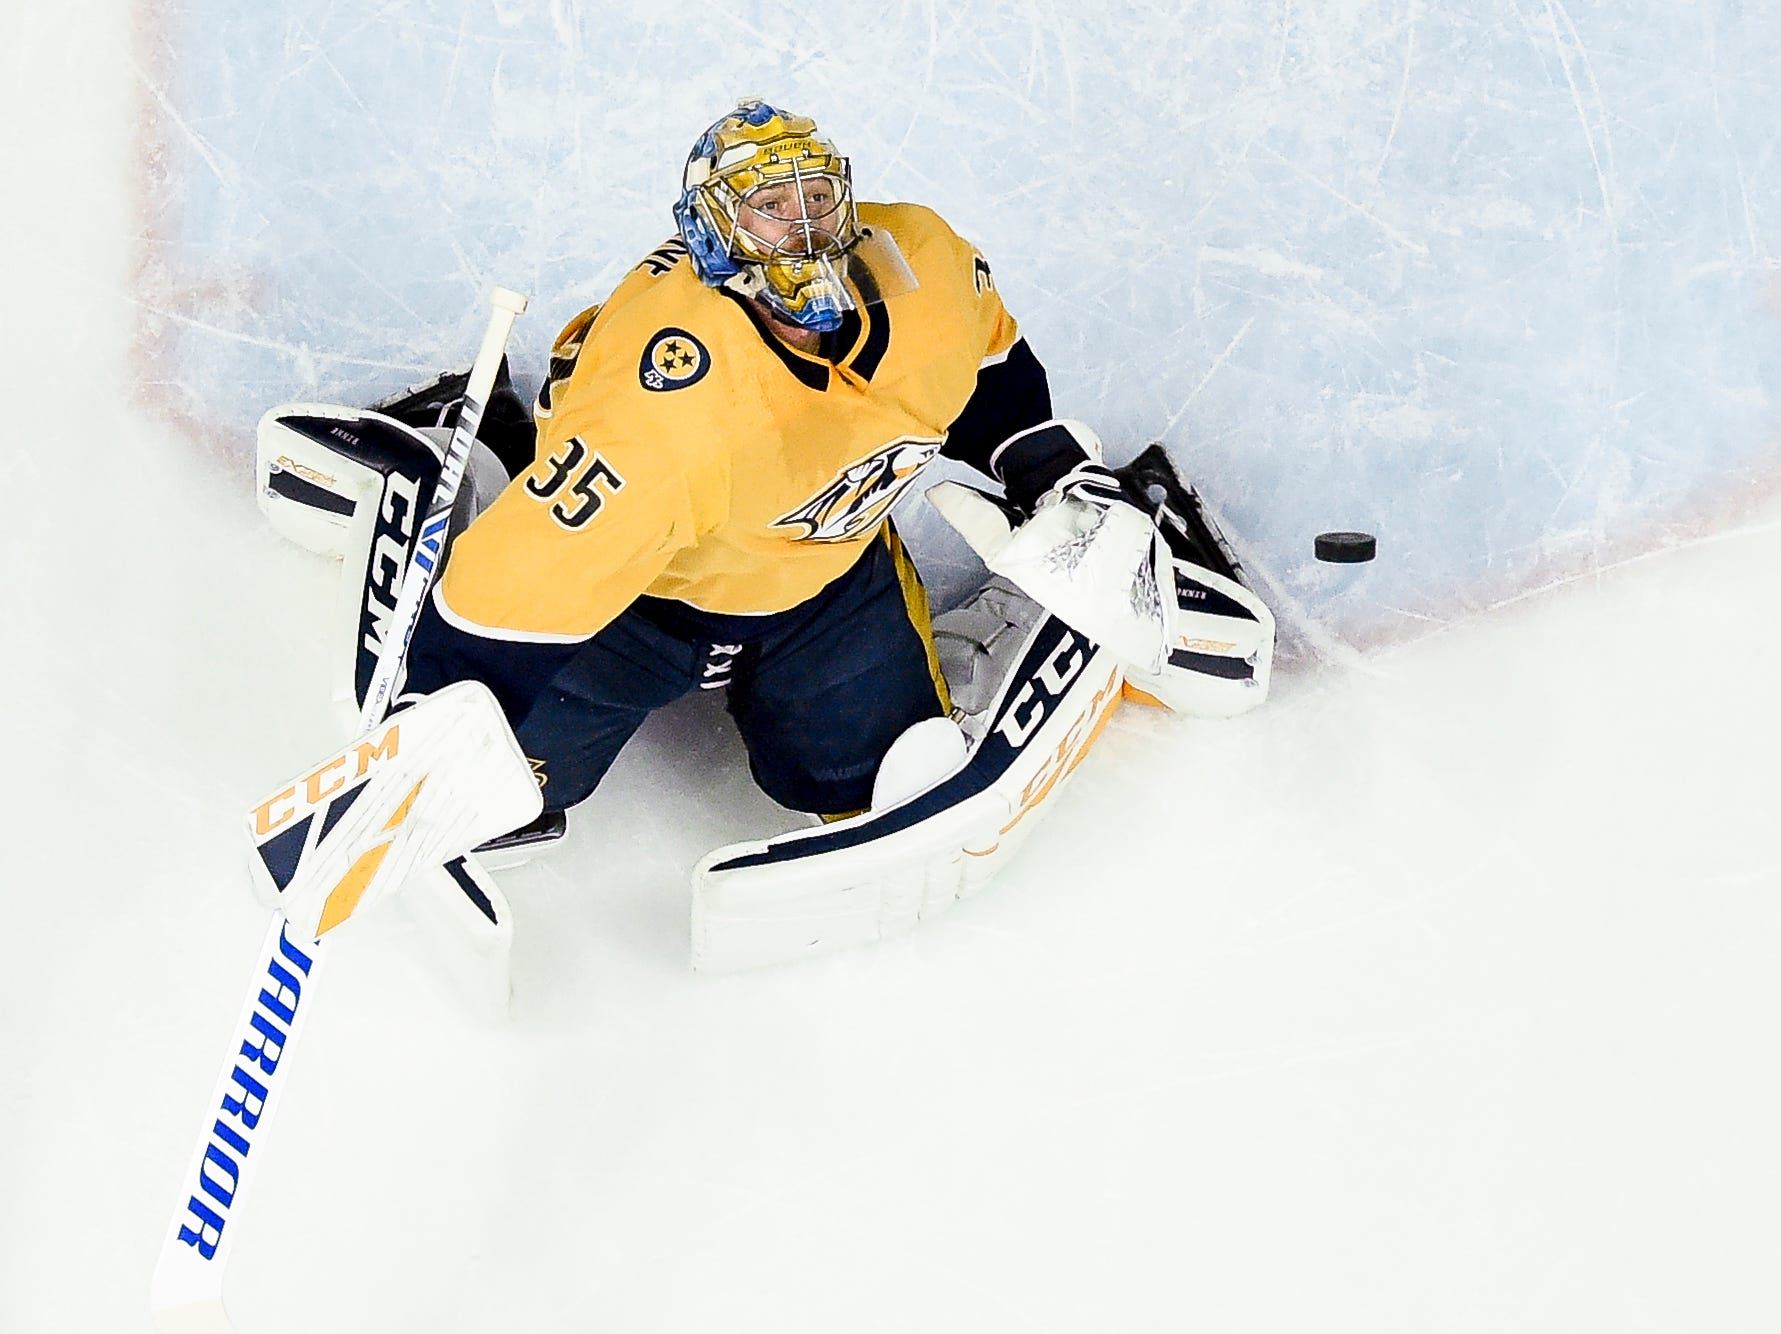 Nashville Predators goaltender Pekka Rinne (35) watches an Arizona Coyotes shot during the first period at Bridgestone Arena in Nashville, Tenn., Thursday, Nov. 29, 2018.